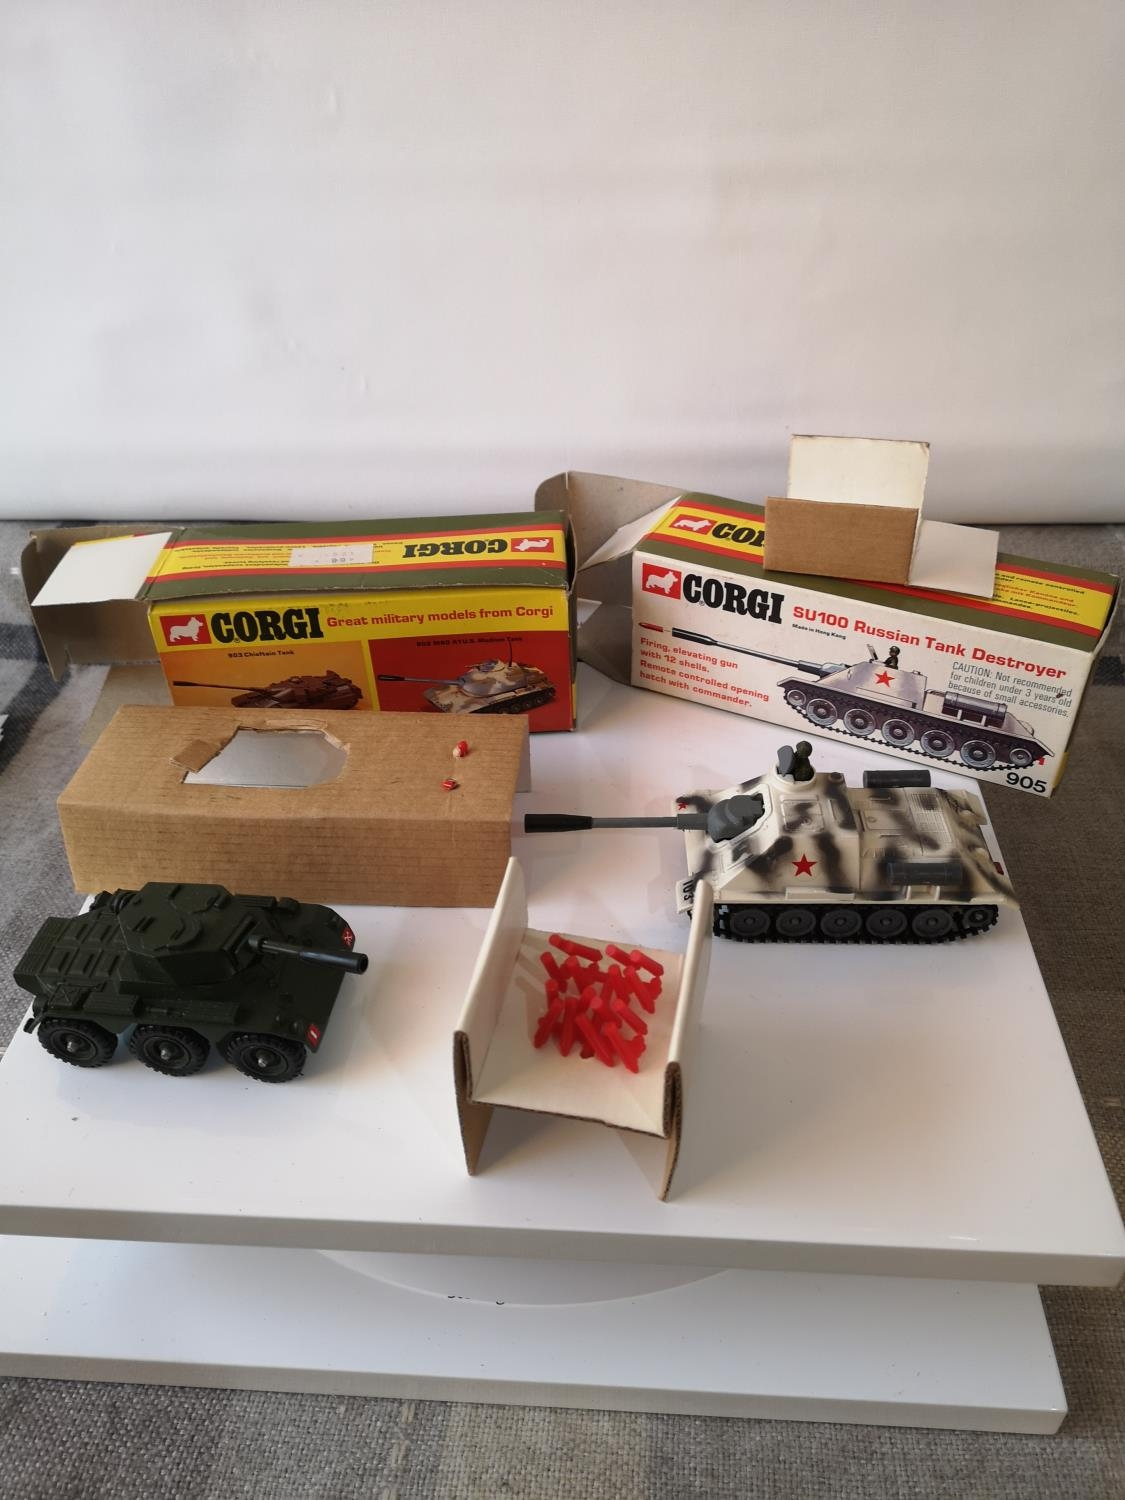 TWO CORGI MILITARY MODELS WITH BOXES. 906 SALADIN ARMOURED CAR & 905 SU100 RUSSIAN TANK DESTROYER.